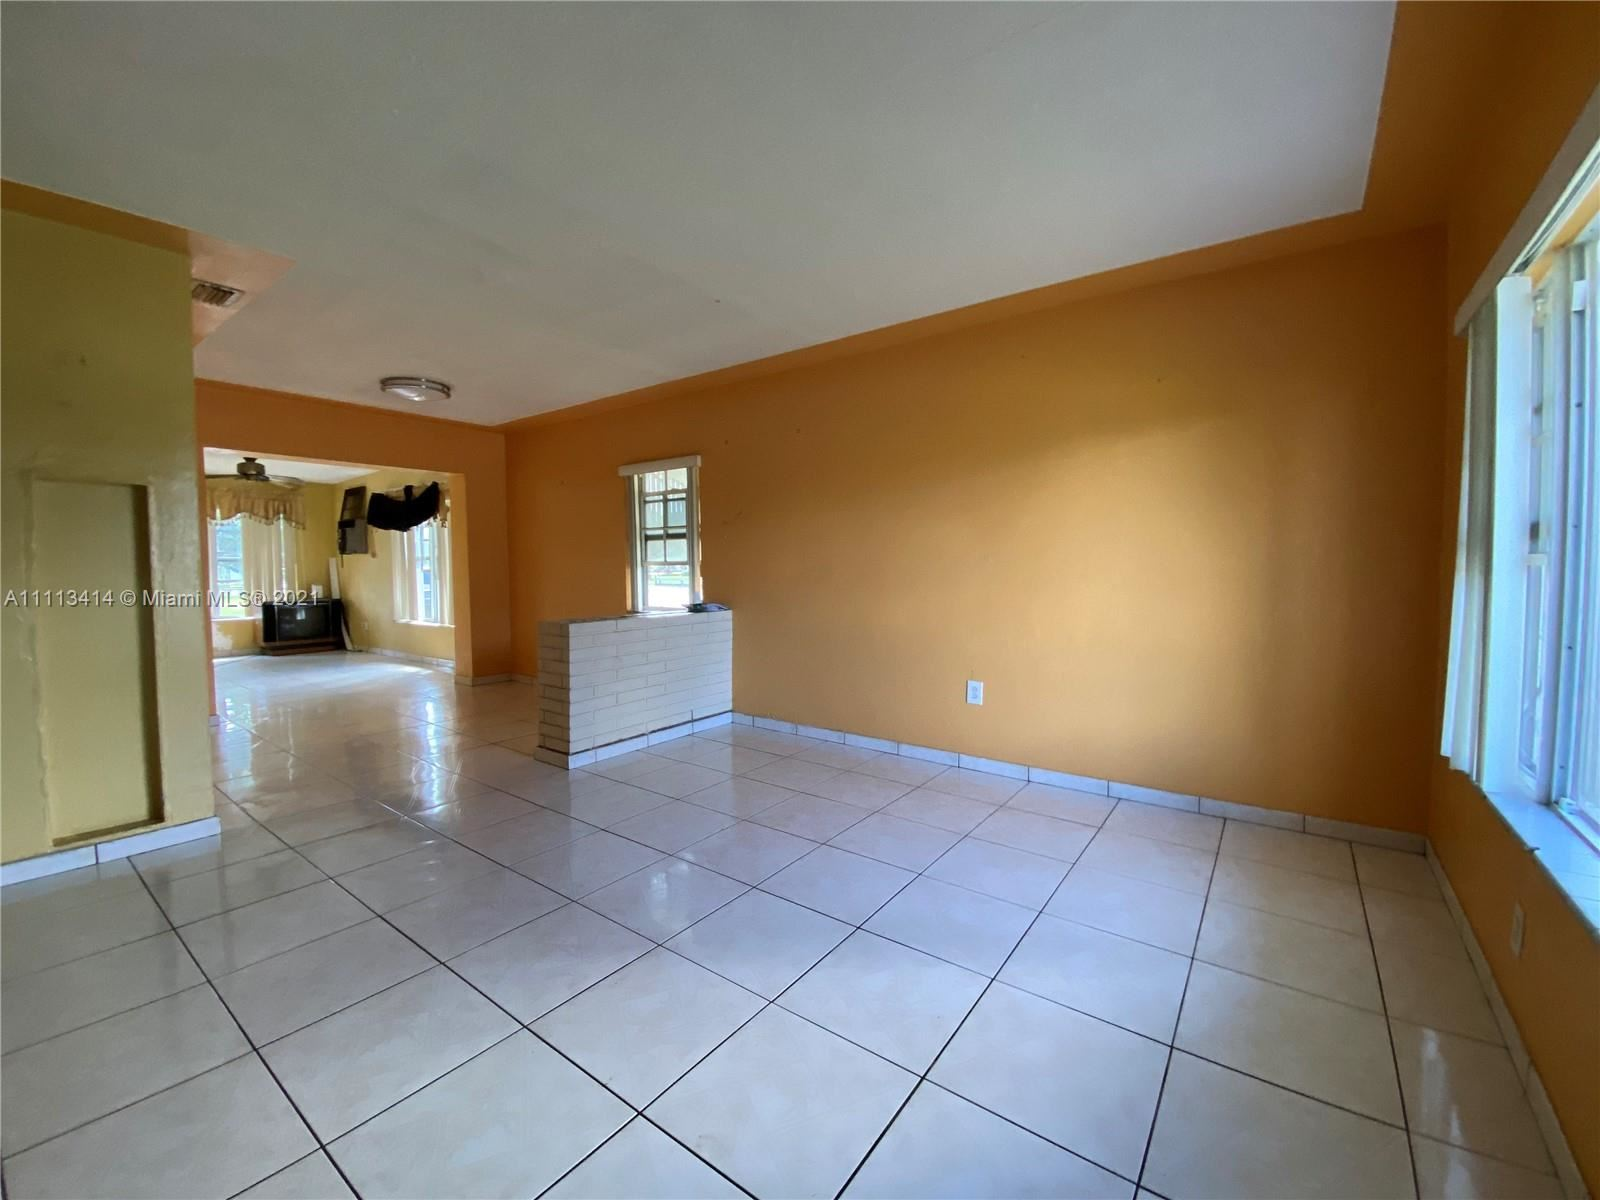 Photo of 3080 NW 185th Ter, Miami Gardens, FL 33056 (MLS # A11113414)